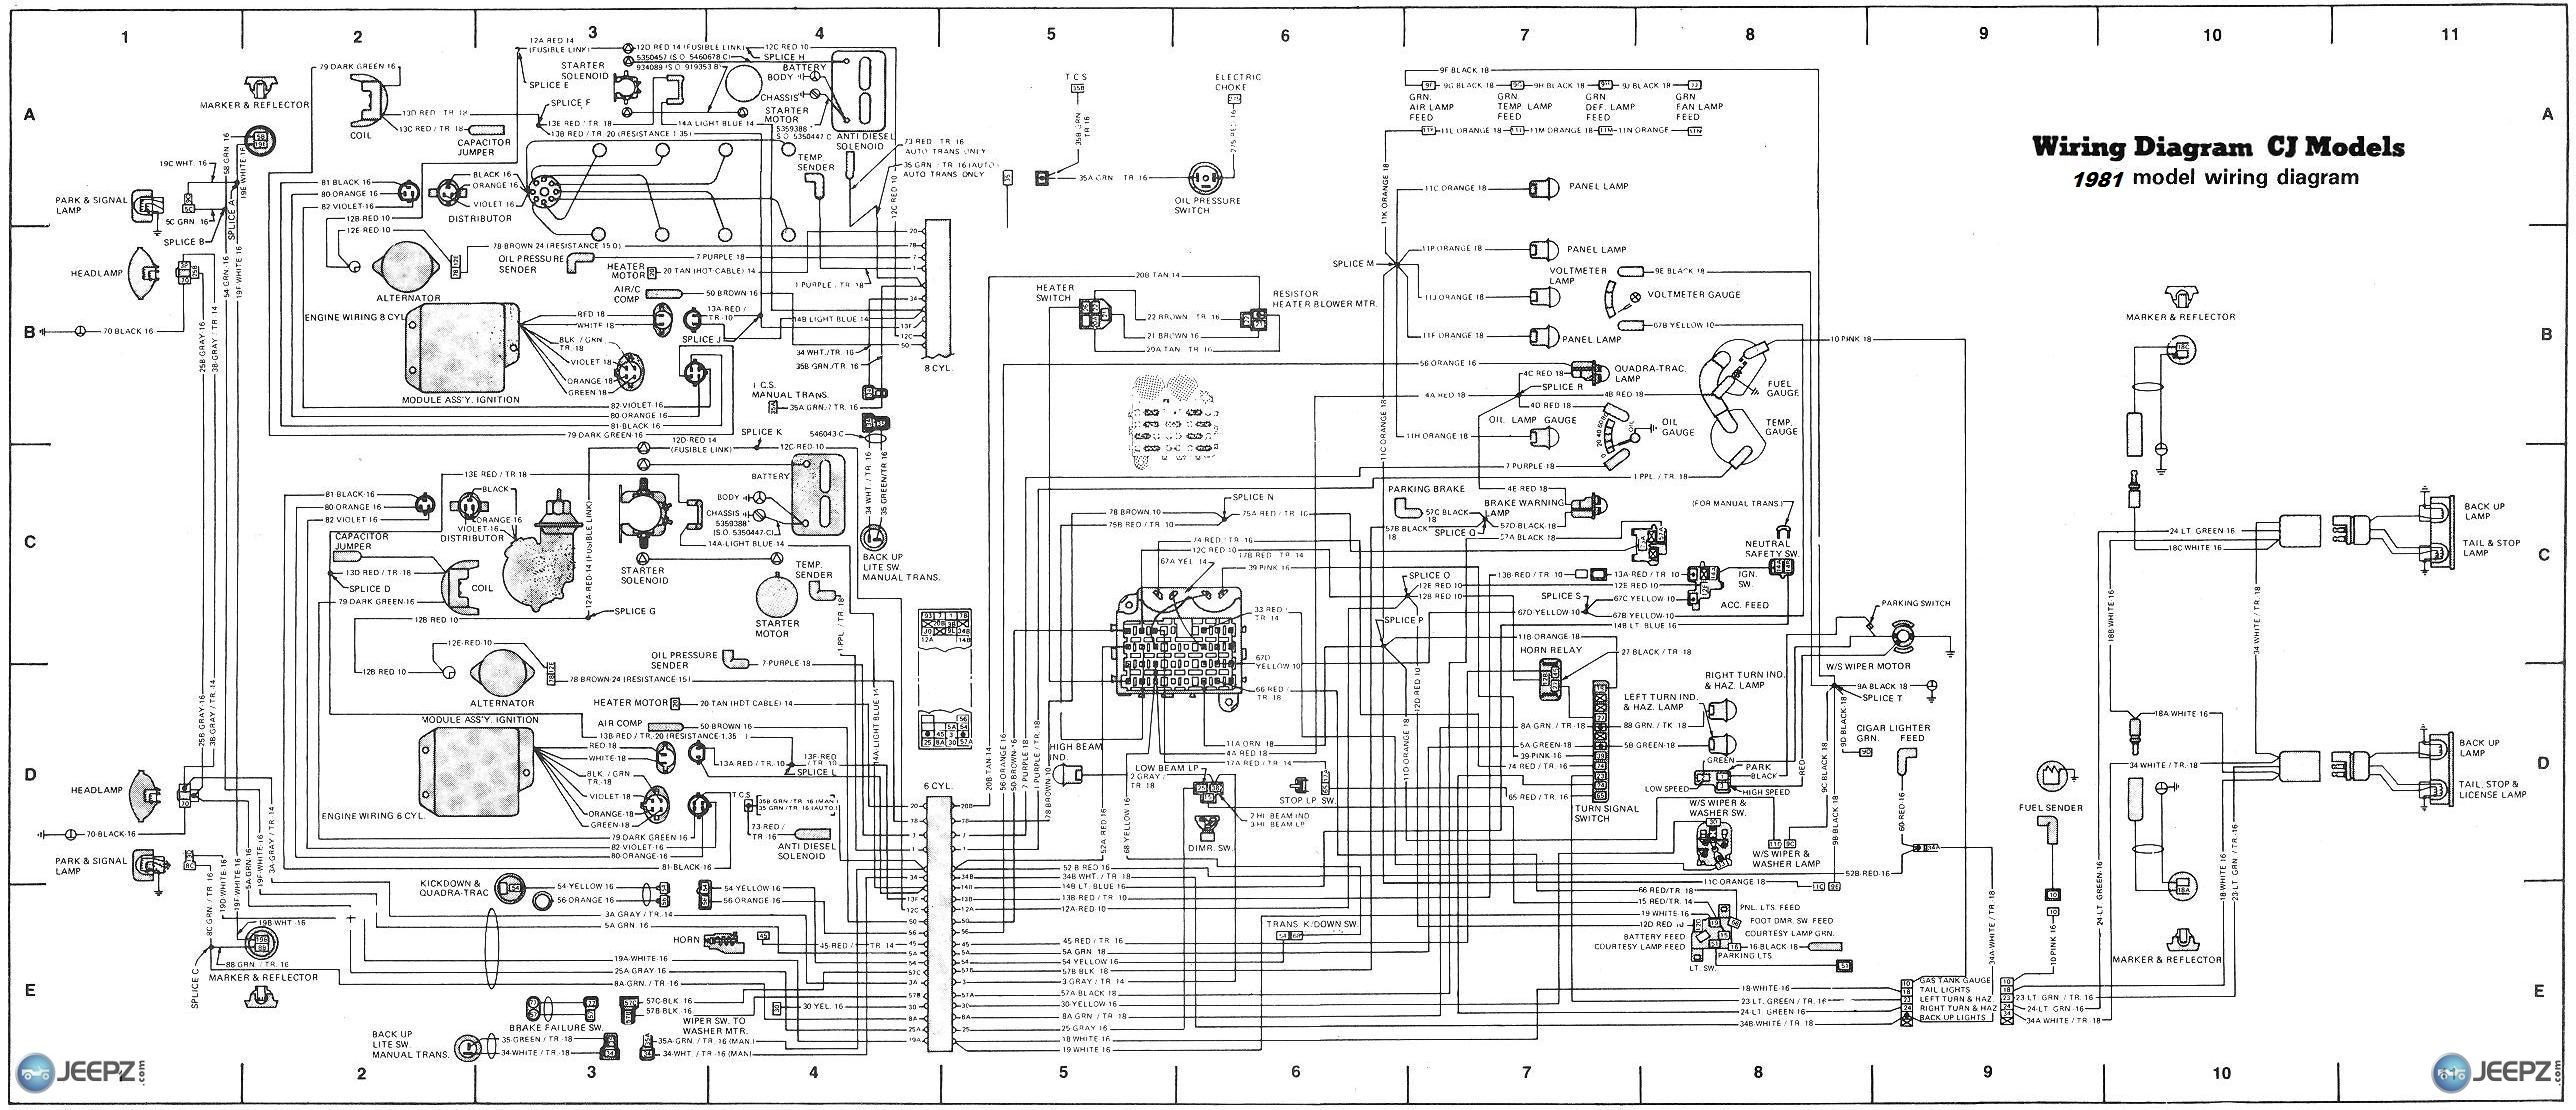 Wiring Diagrams For 1985 Jeep Cj7 Simple Wiring Diagram Motorcycle  Electronic Ignition Wiring Diagram 85 Jeep Ignition Wire Diagram